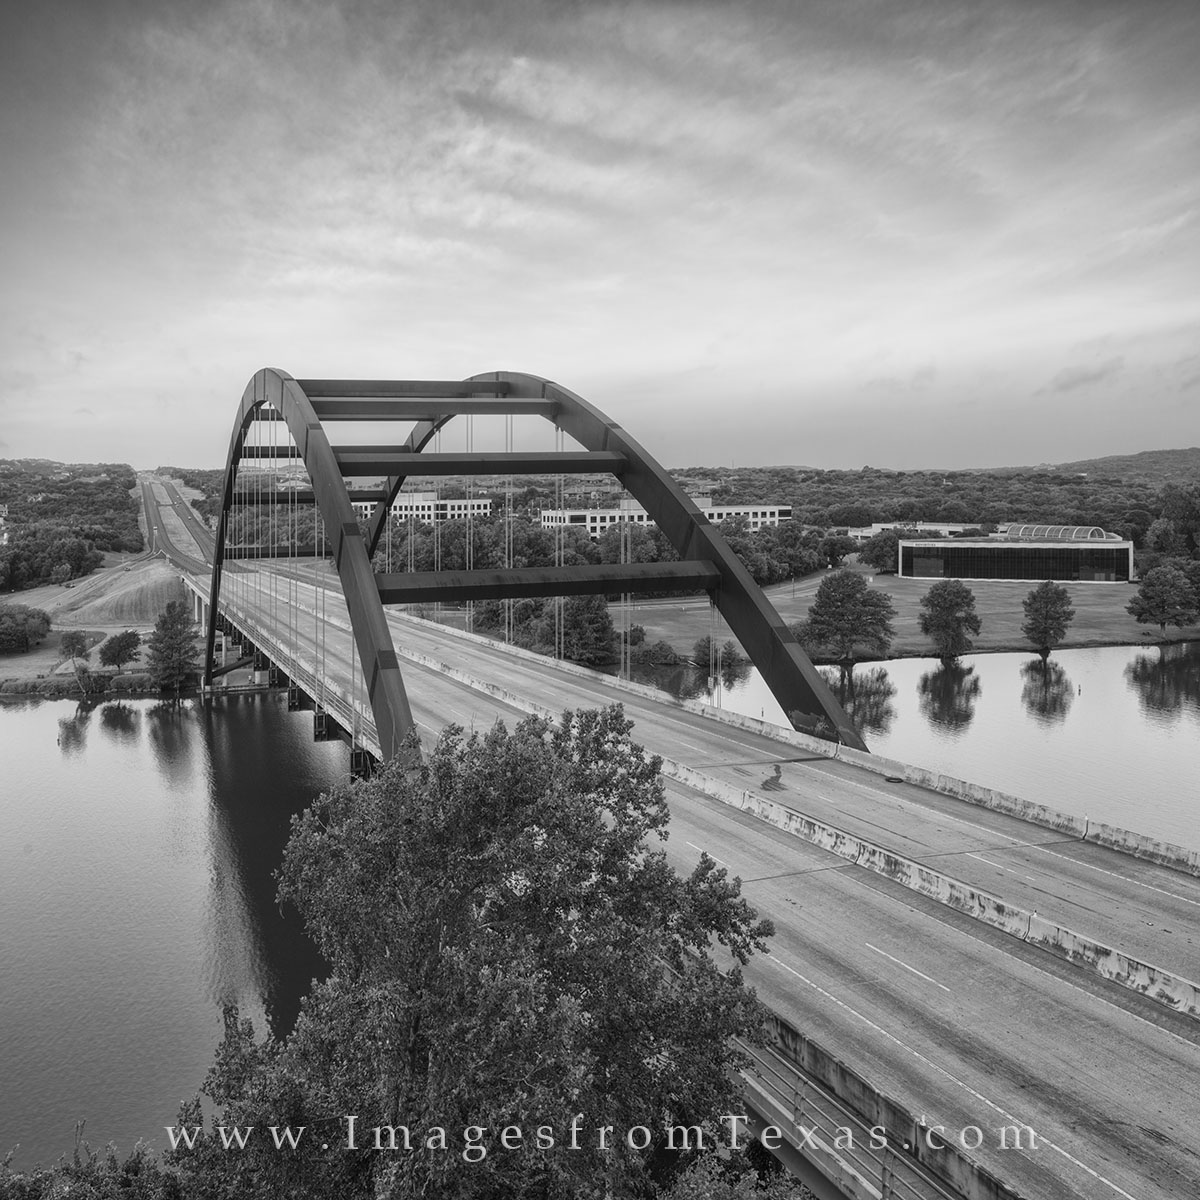 This black and white image from Austin, Texas, shows the local iconic landmark - the 360 Bridge - as it stretches across the...